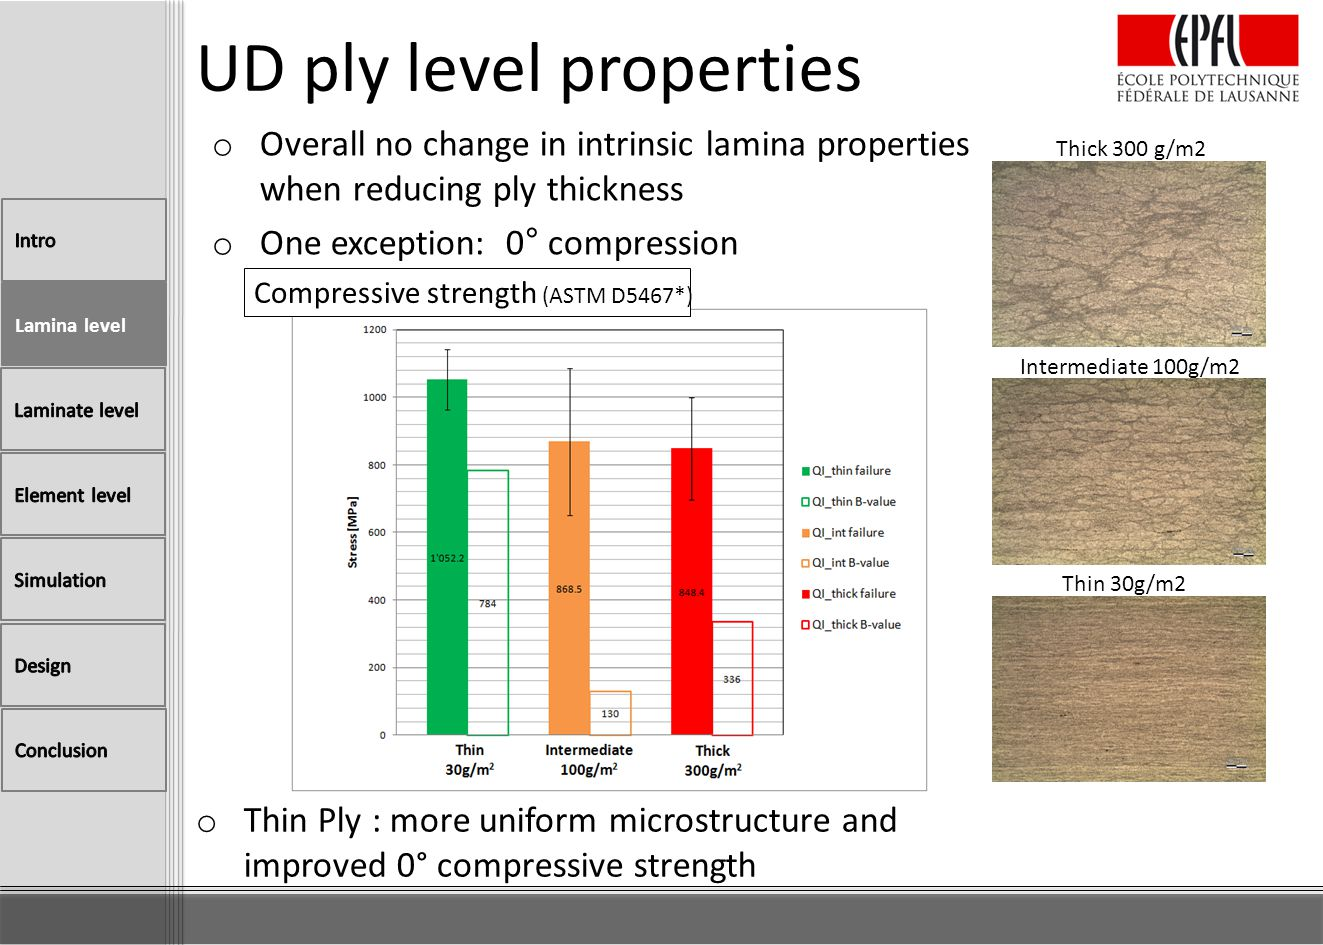 UD ply level properties o Thin Ply : more uniform microstructure and improved 0° compressive strength Compressive strength (ASTM D5467*) Thick 300 g/m